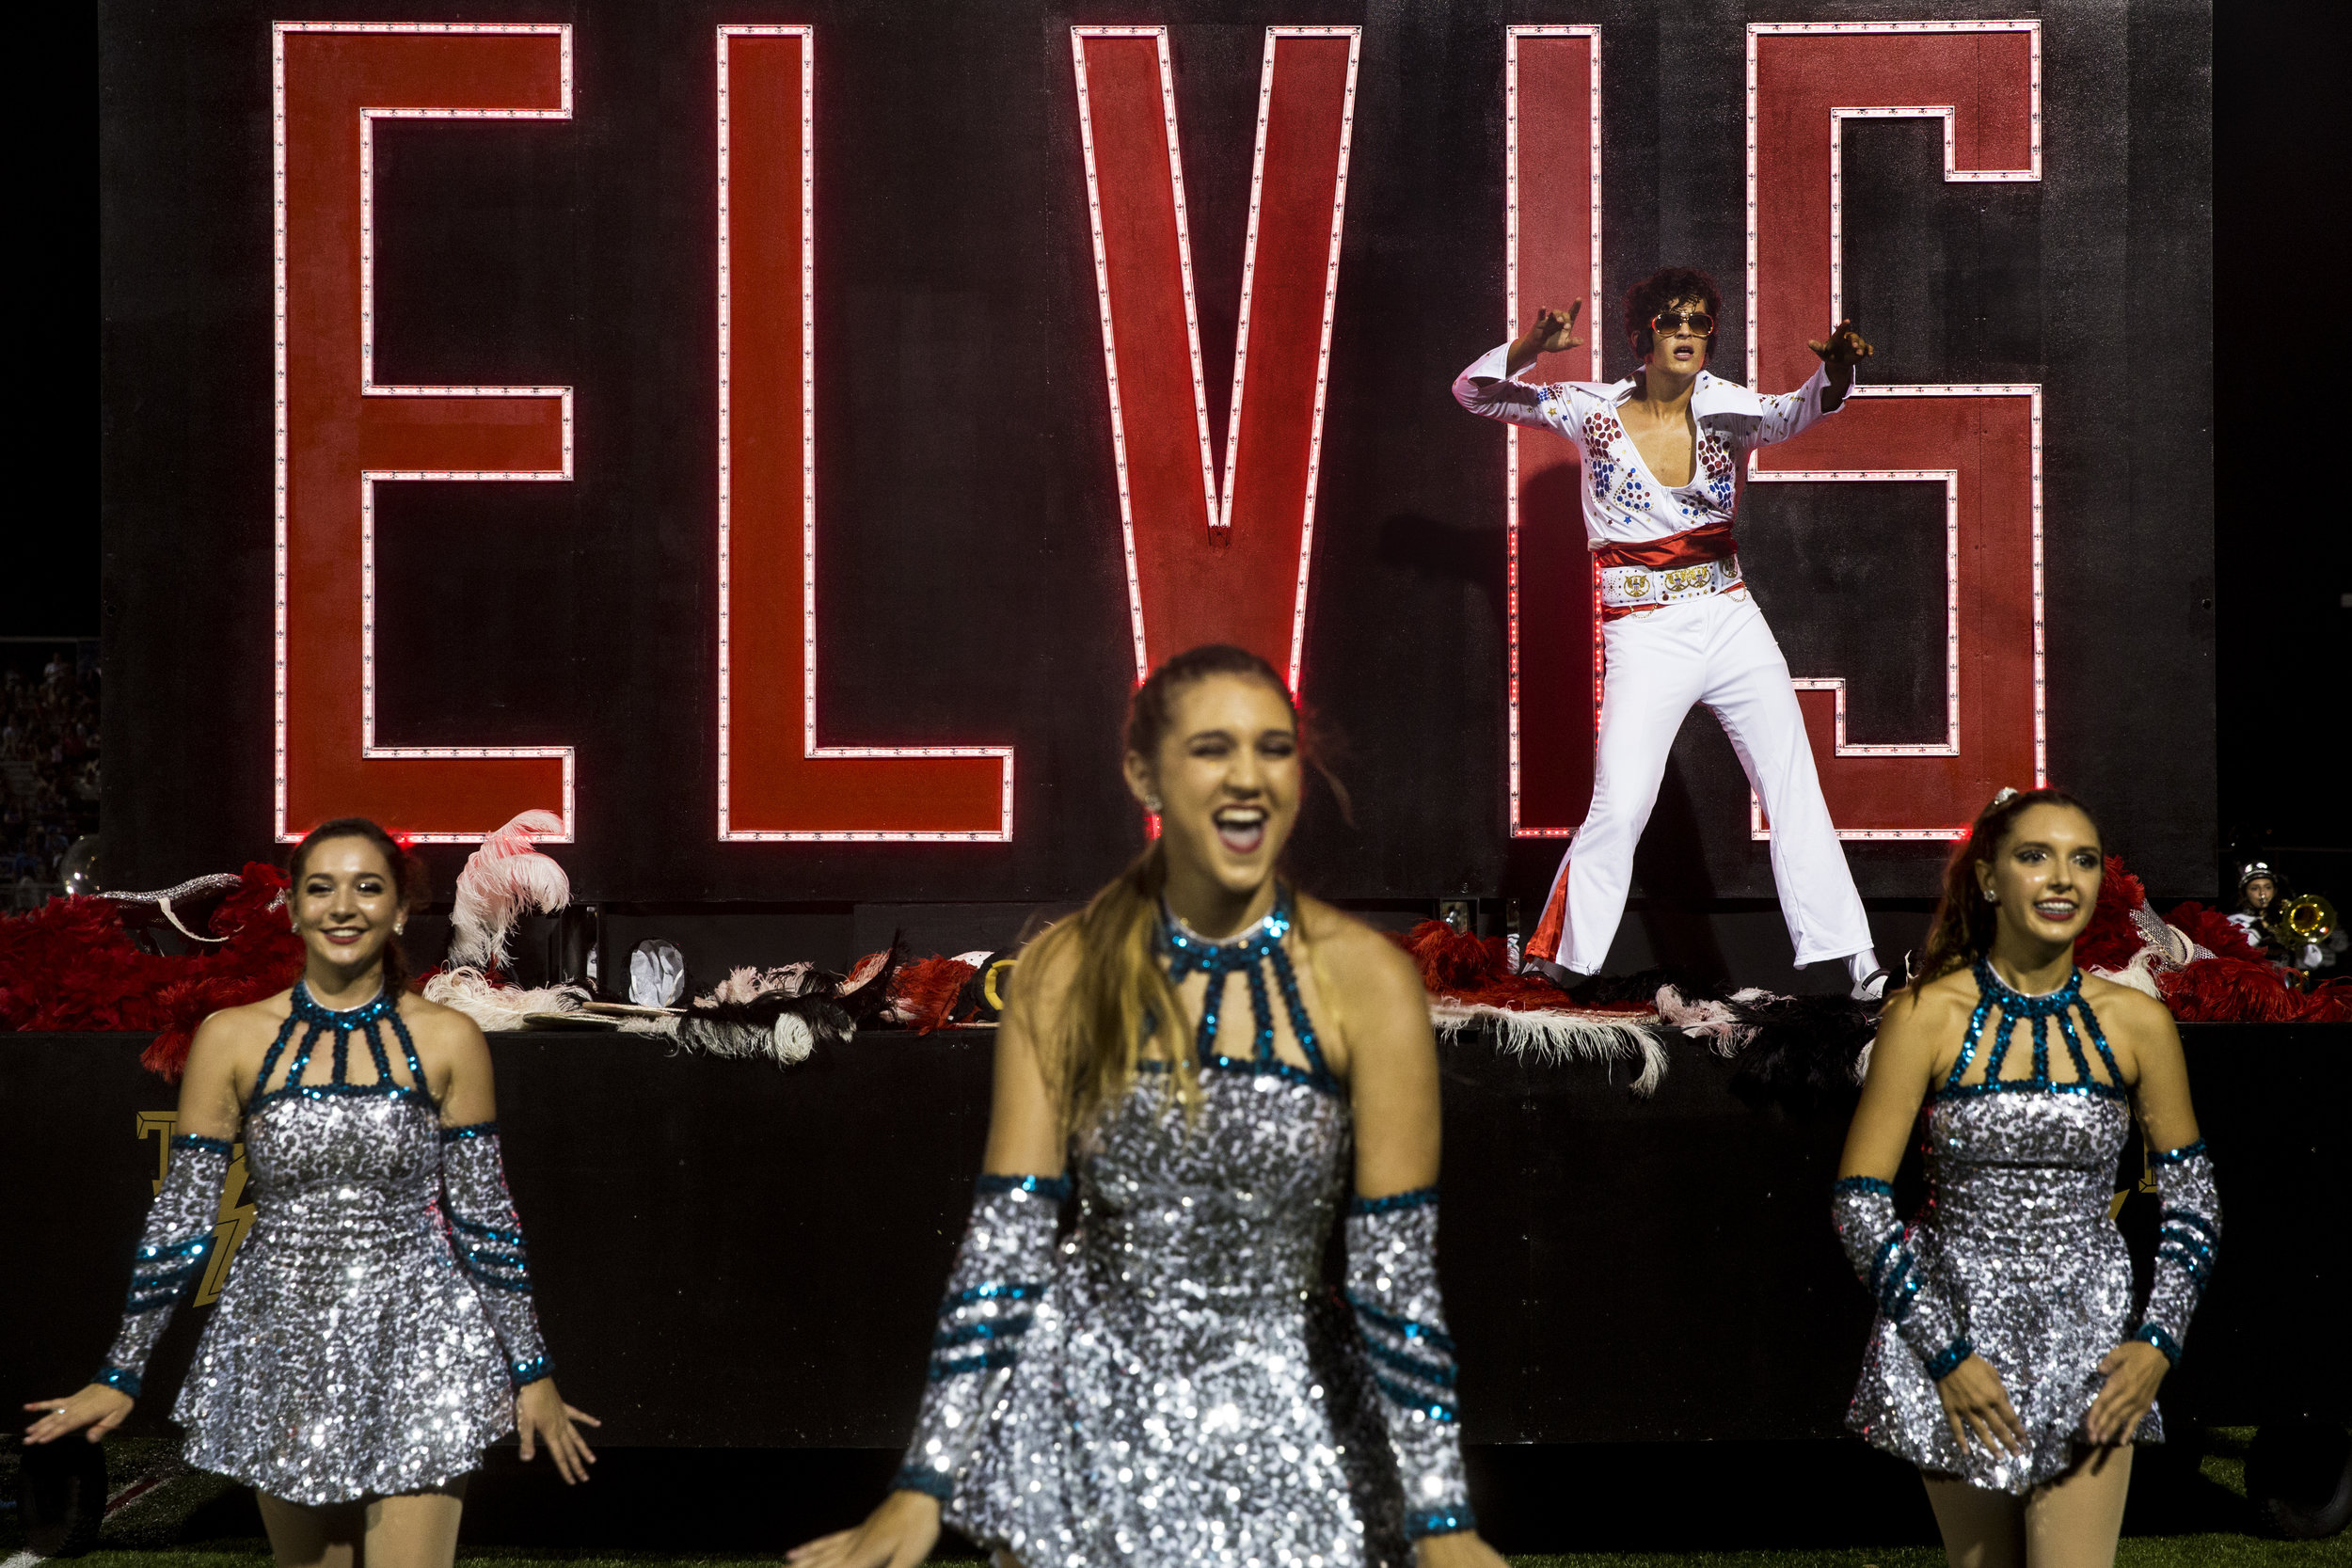 Armond Procacci, top right, strikes a pose as Elvis while performing with the Gulf Coast High School marching band during the halftime show of the Catfish Bowl at Gulf Coast High School in North Naples on Friday, Oct. 6, 2017.